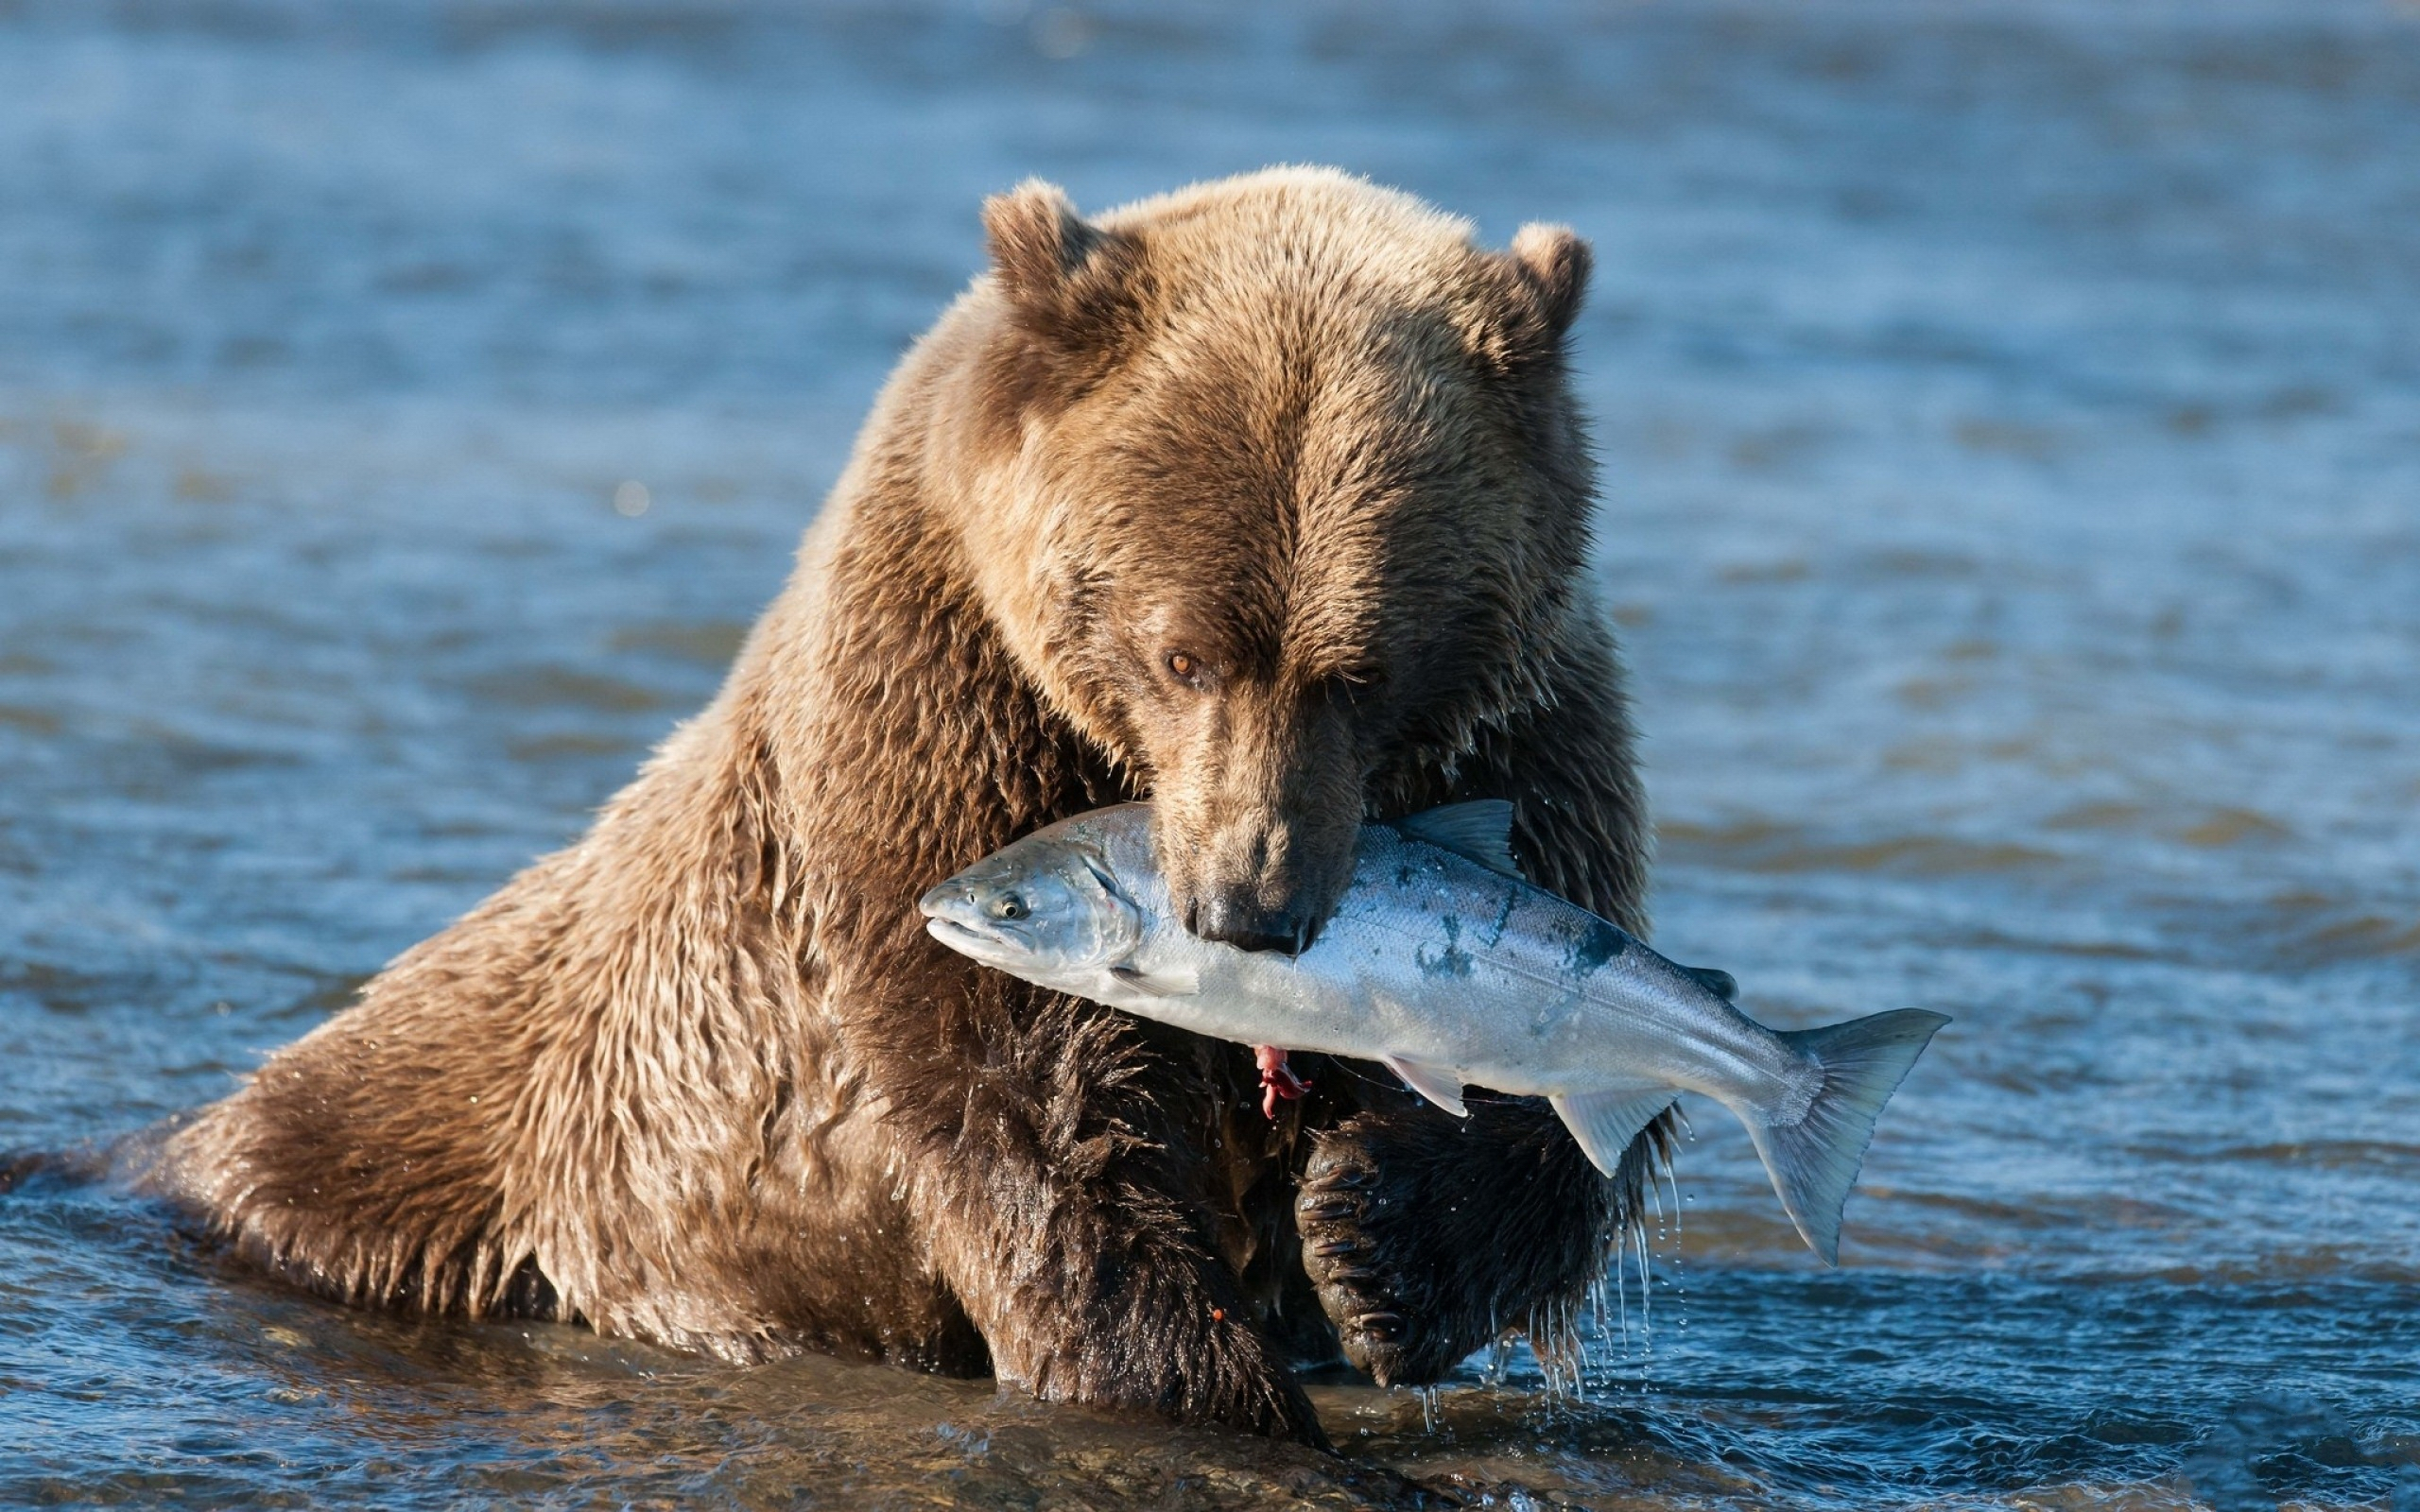 Alaska bear photos and natural history information by Patrick Endres Pictures of bears fishing